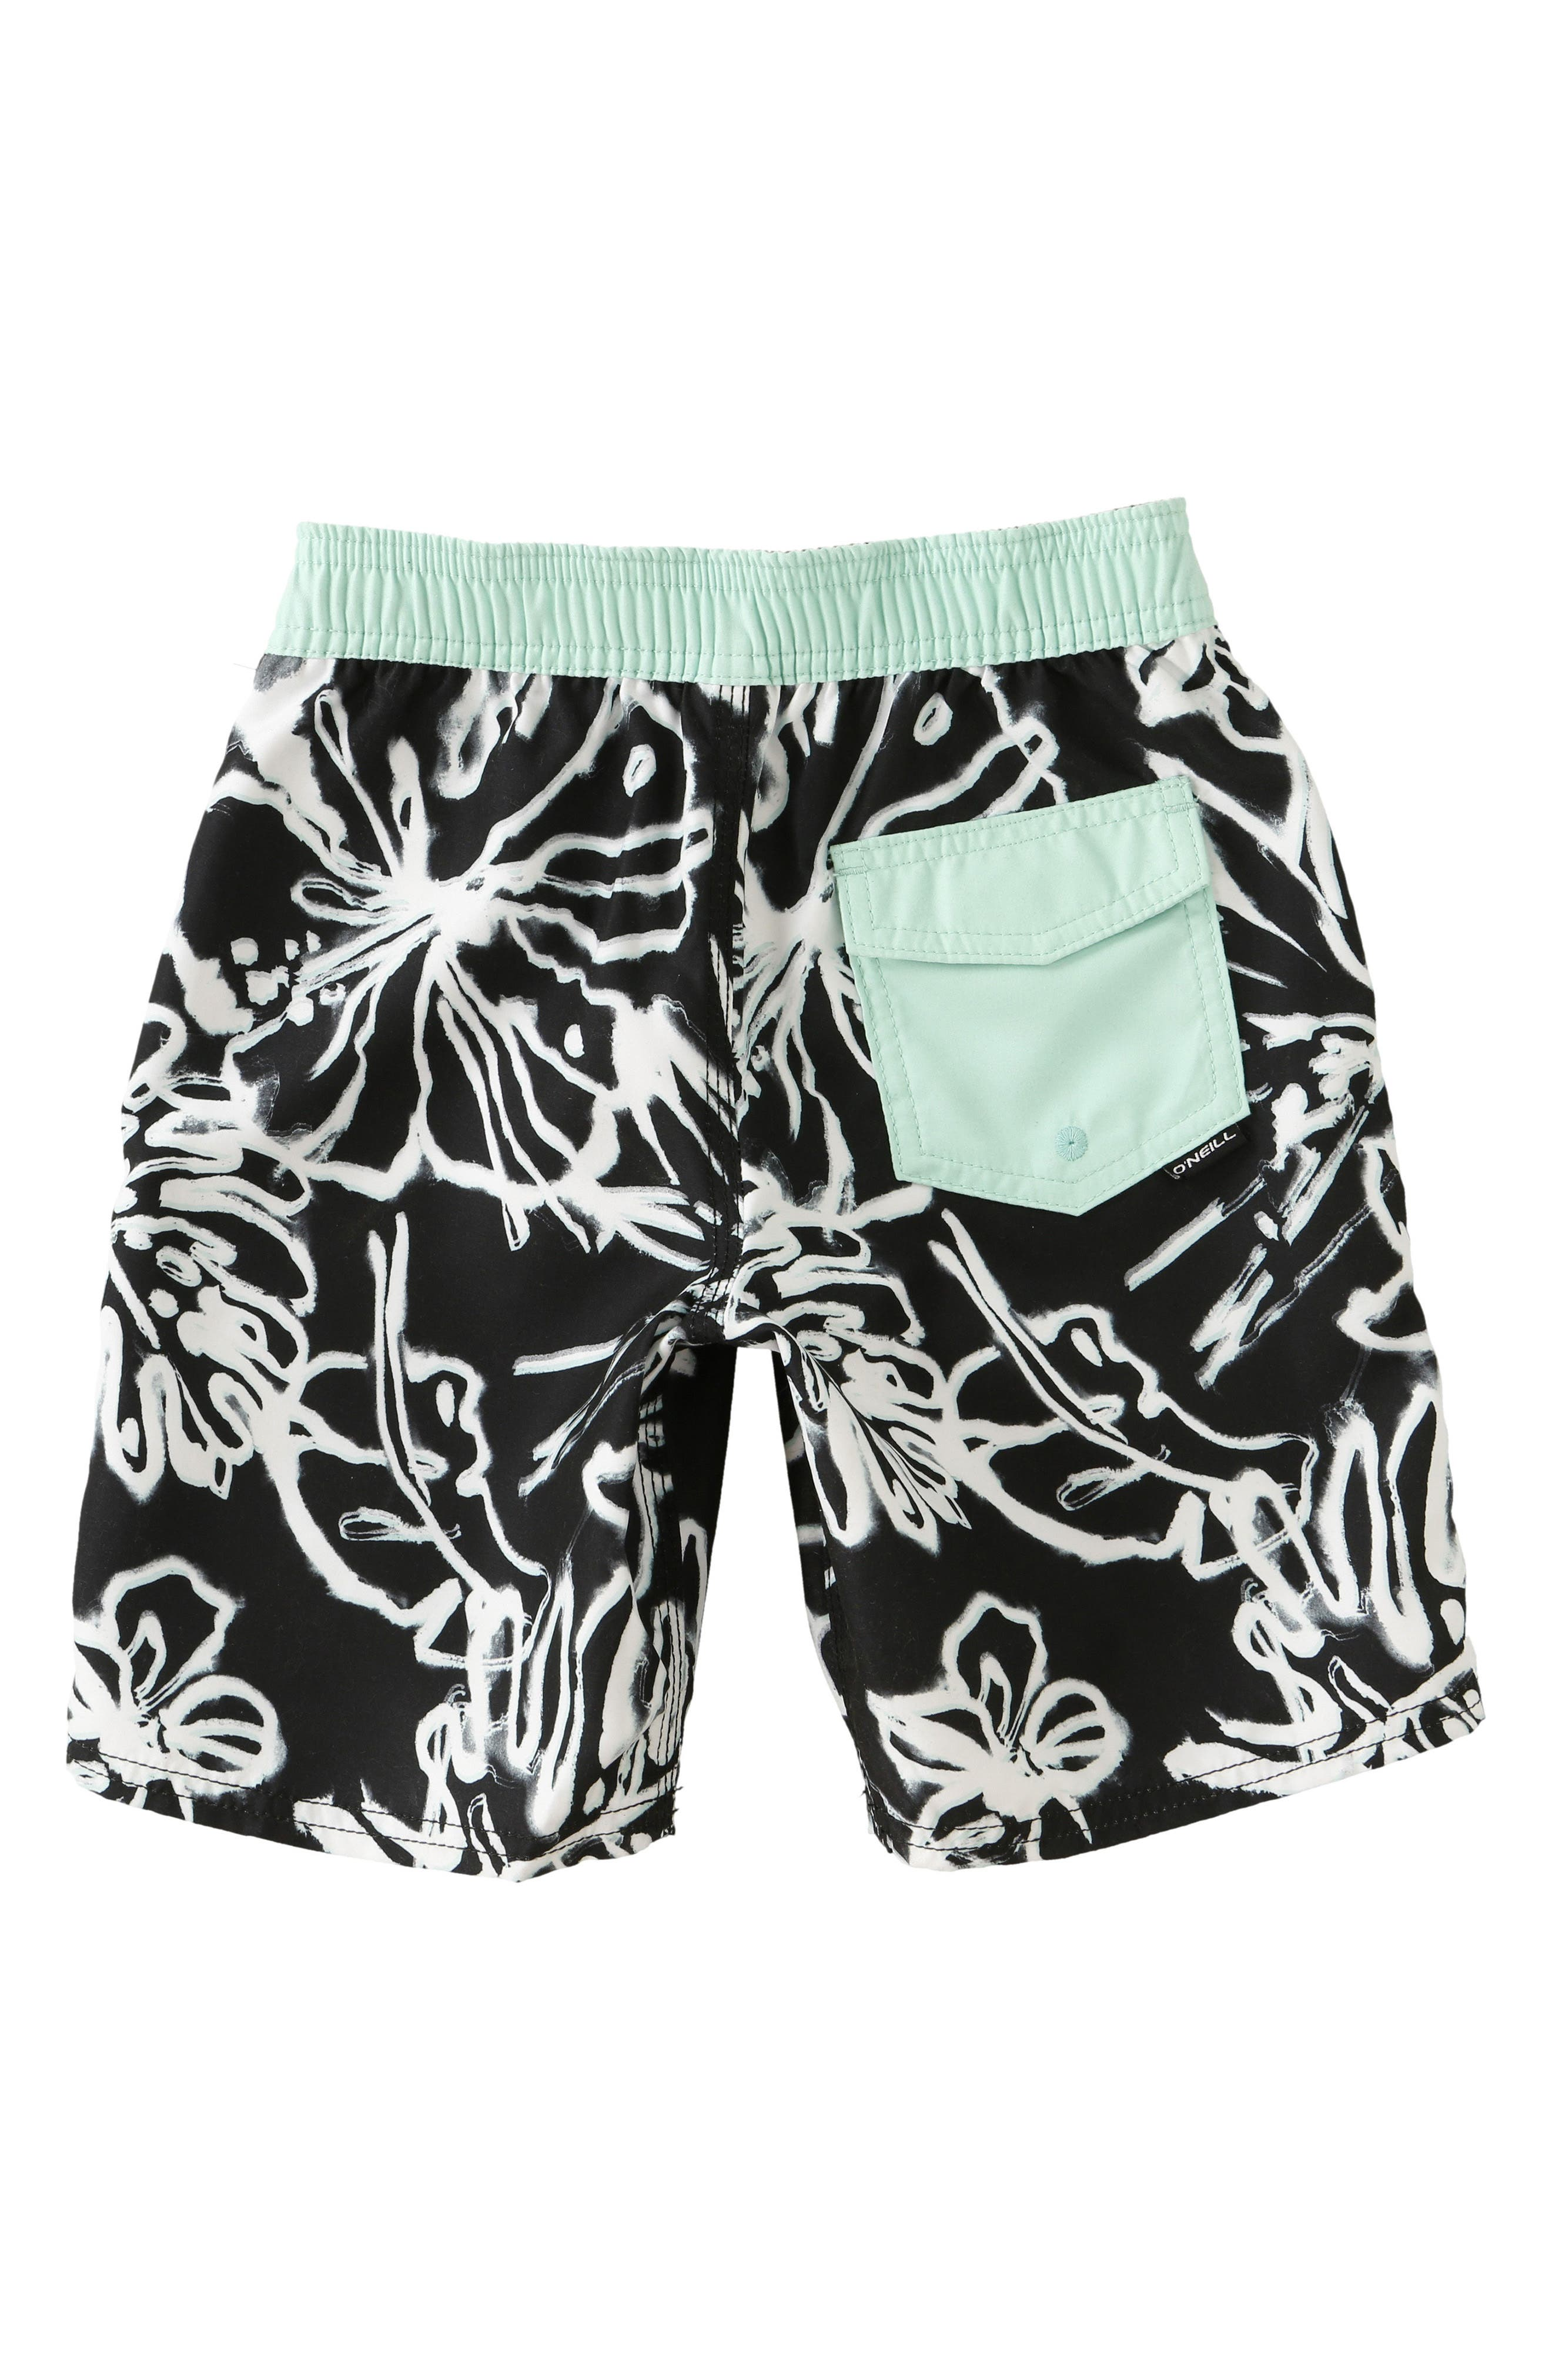 Hanalei Board Shorts,                             Alternate thumbnail 3, color,